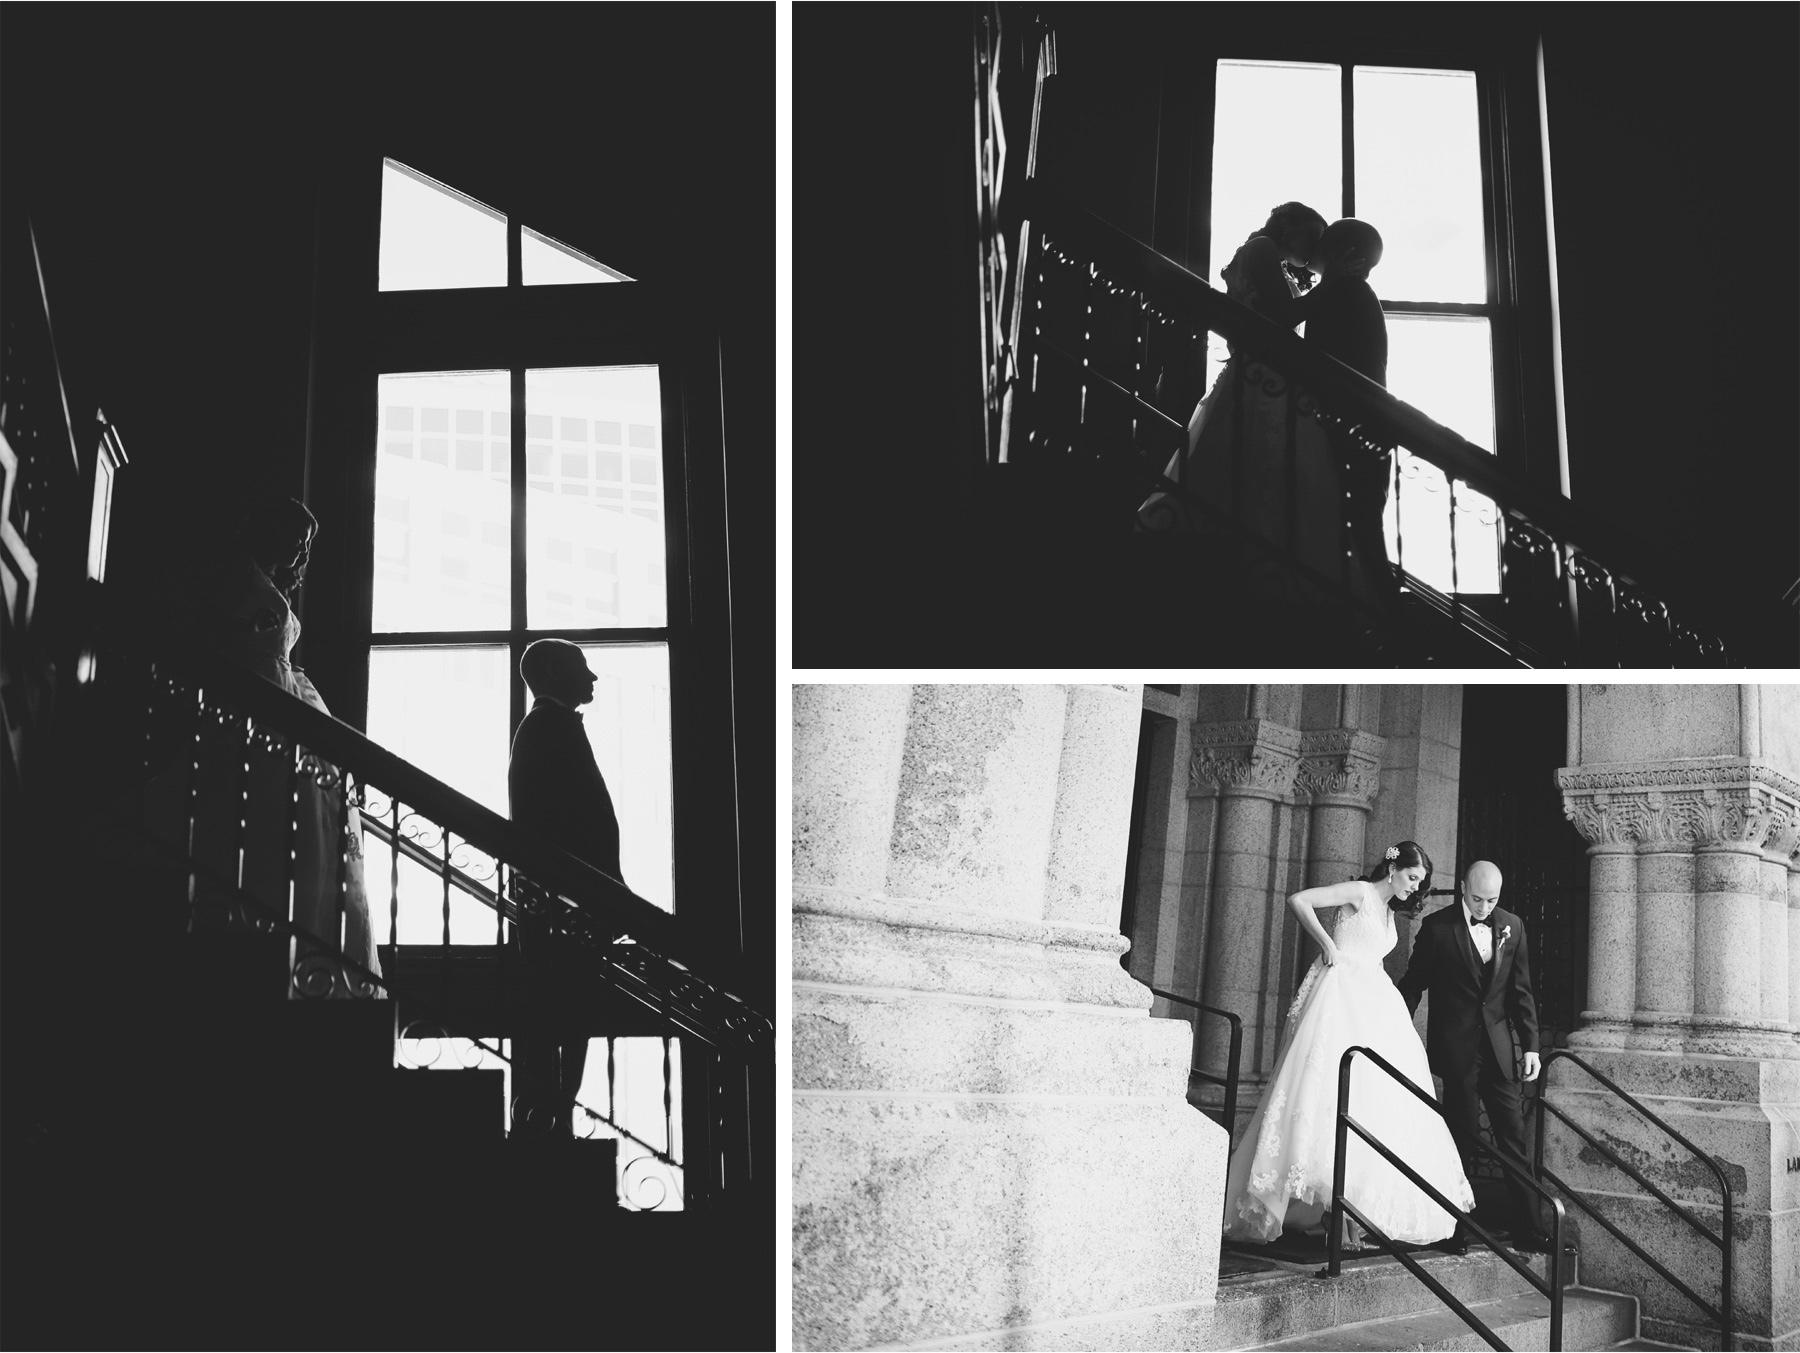 07-Saint-Paul-Minnesota-Wedding-Photographer-by-Andrew-Vick-Photography-Winter-New-Years-Eve-Embassy-Suites-First-Meeting-Look-Bride-Groom-Kiss-Staircase-Stairs-Black-and-White-Emily-and-Michael.jpg